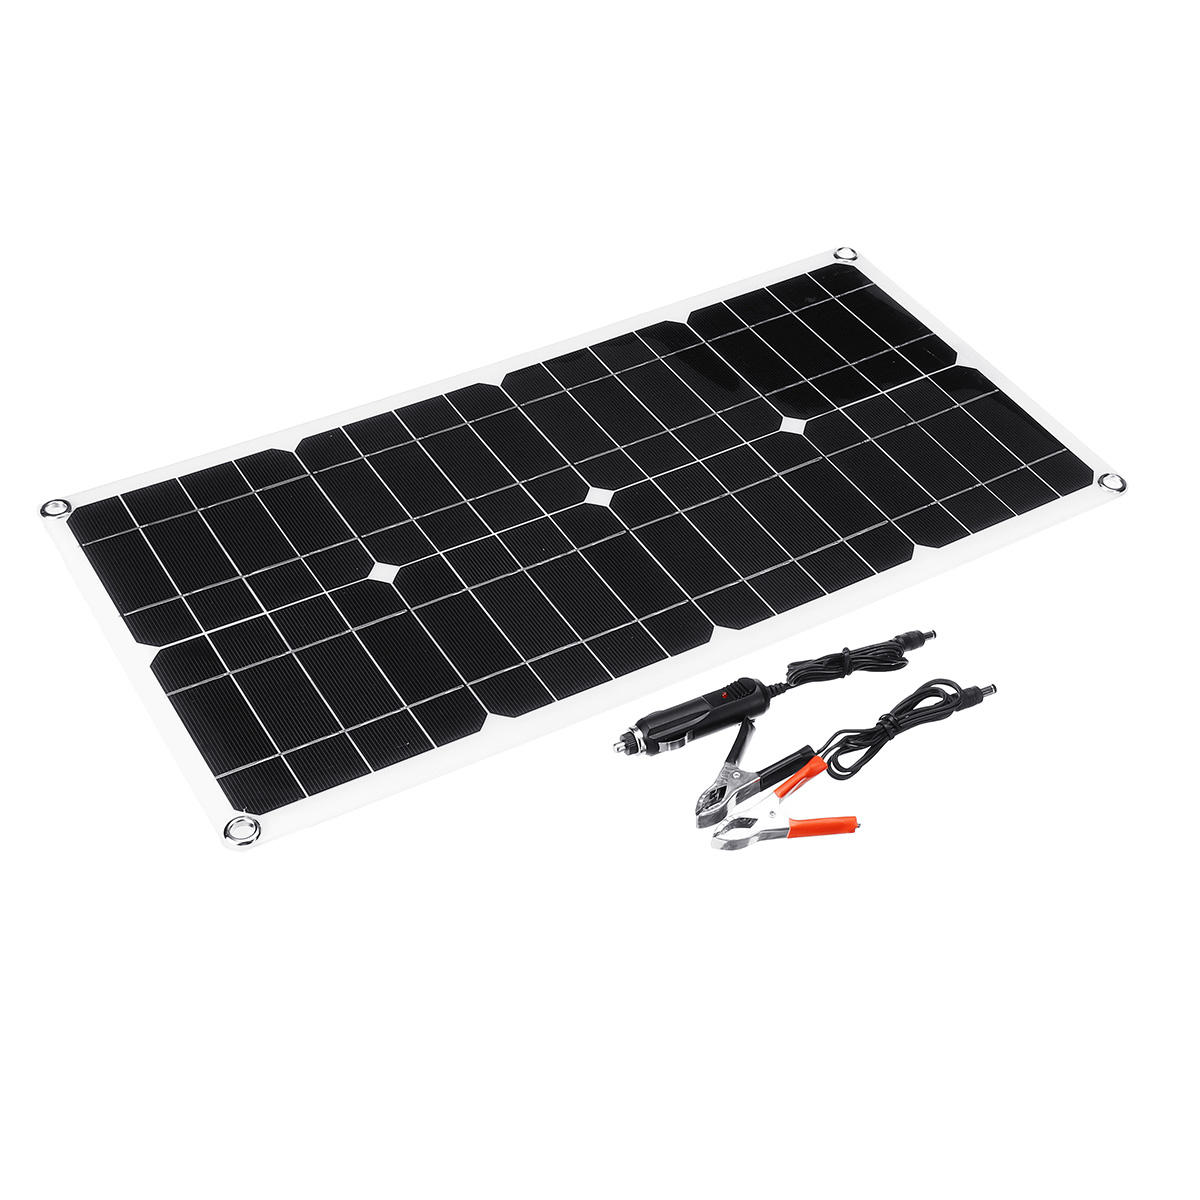 Solar Power Panel Generator Kit 5V USB Charger Home System with 3 LED Bulbs Light - 1